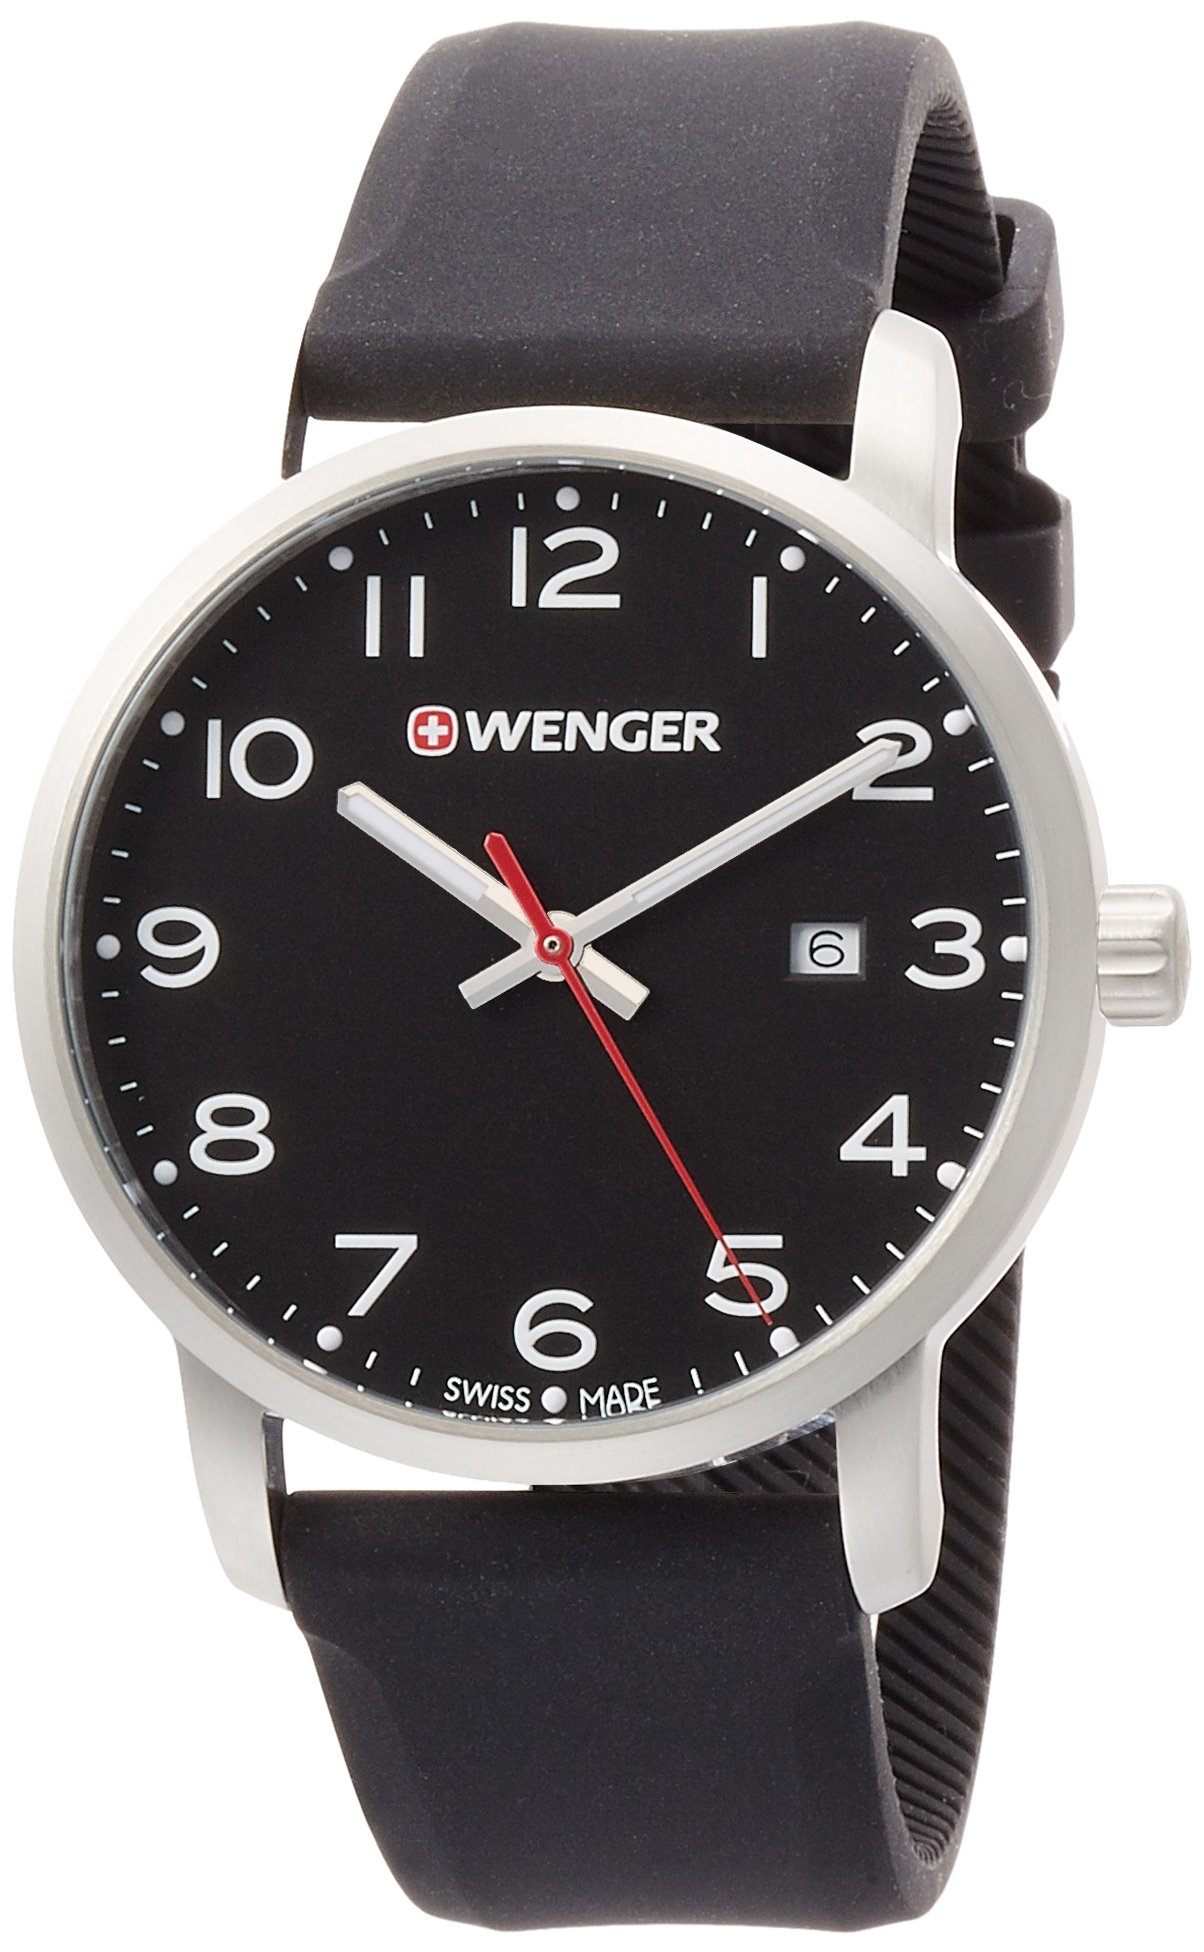 WENGER Unisex Analogue Quartz Watch with Silicone Strap 01.1641.101